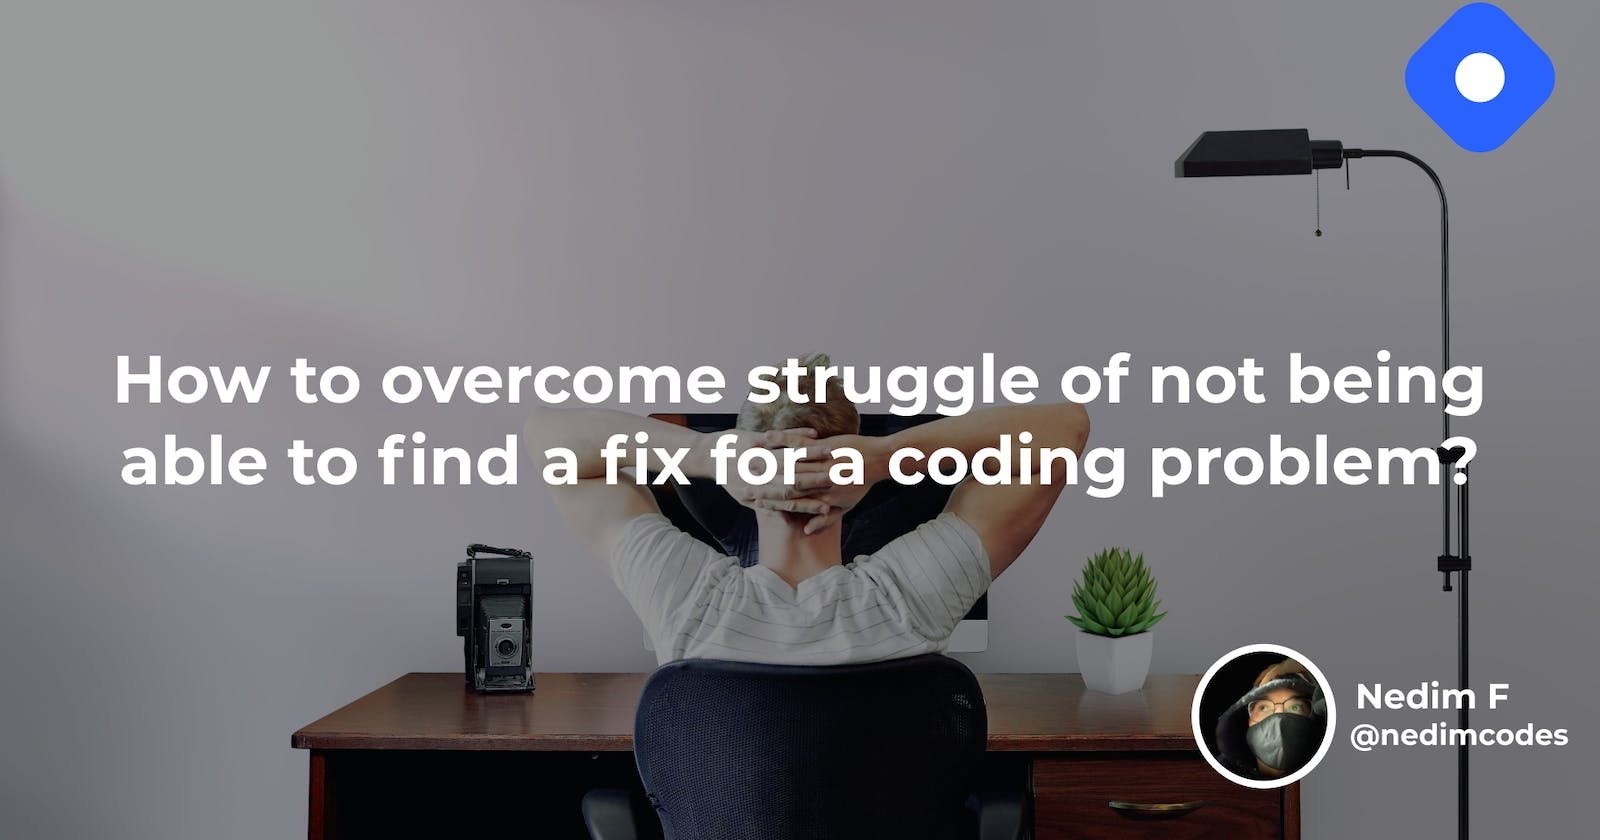 How to overcome the struggle of not being able to find a fix for a coding problem?